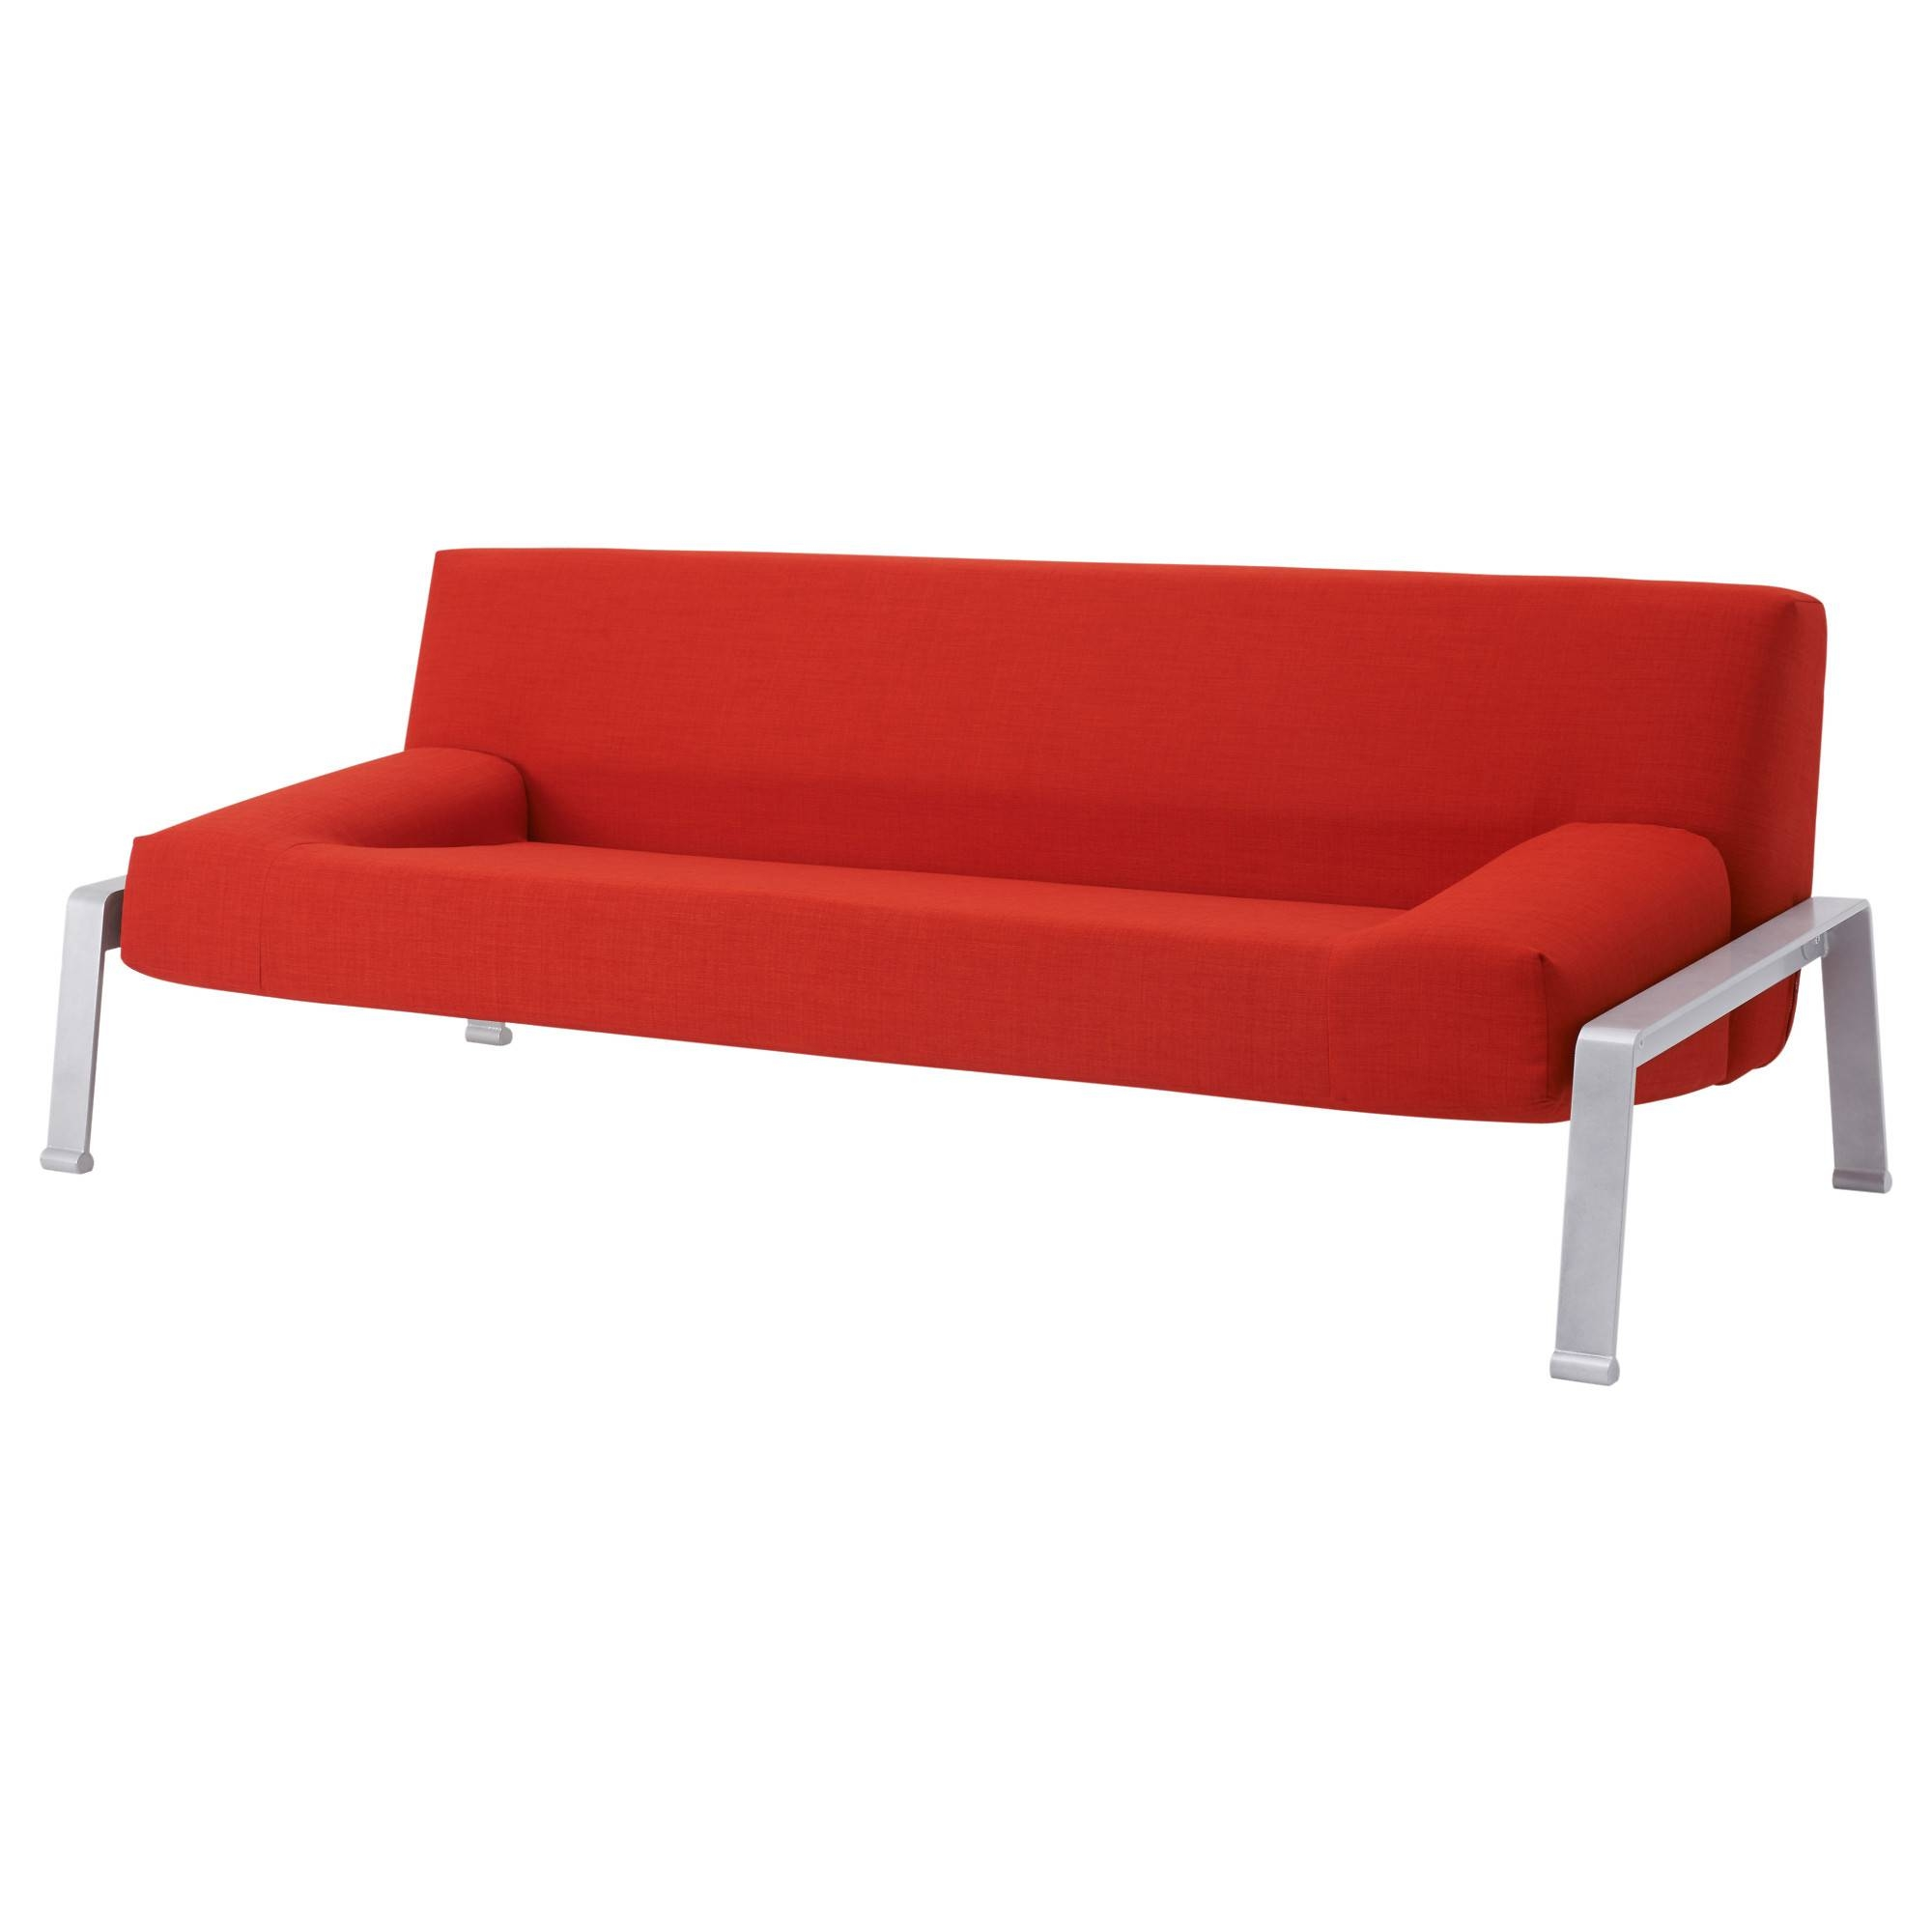 Erska Sleeper Sofa - Skiftebo Orange - Ikea intended for Sofa Bed Sleepers (Image 4 of 30)